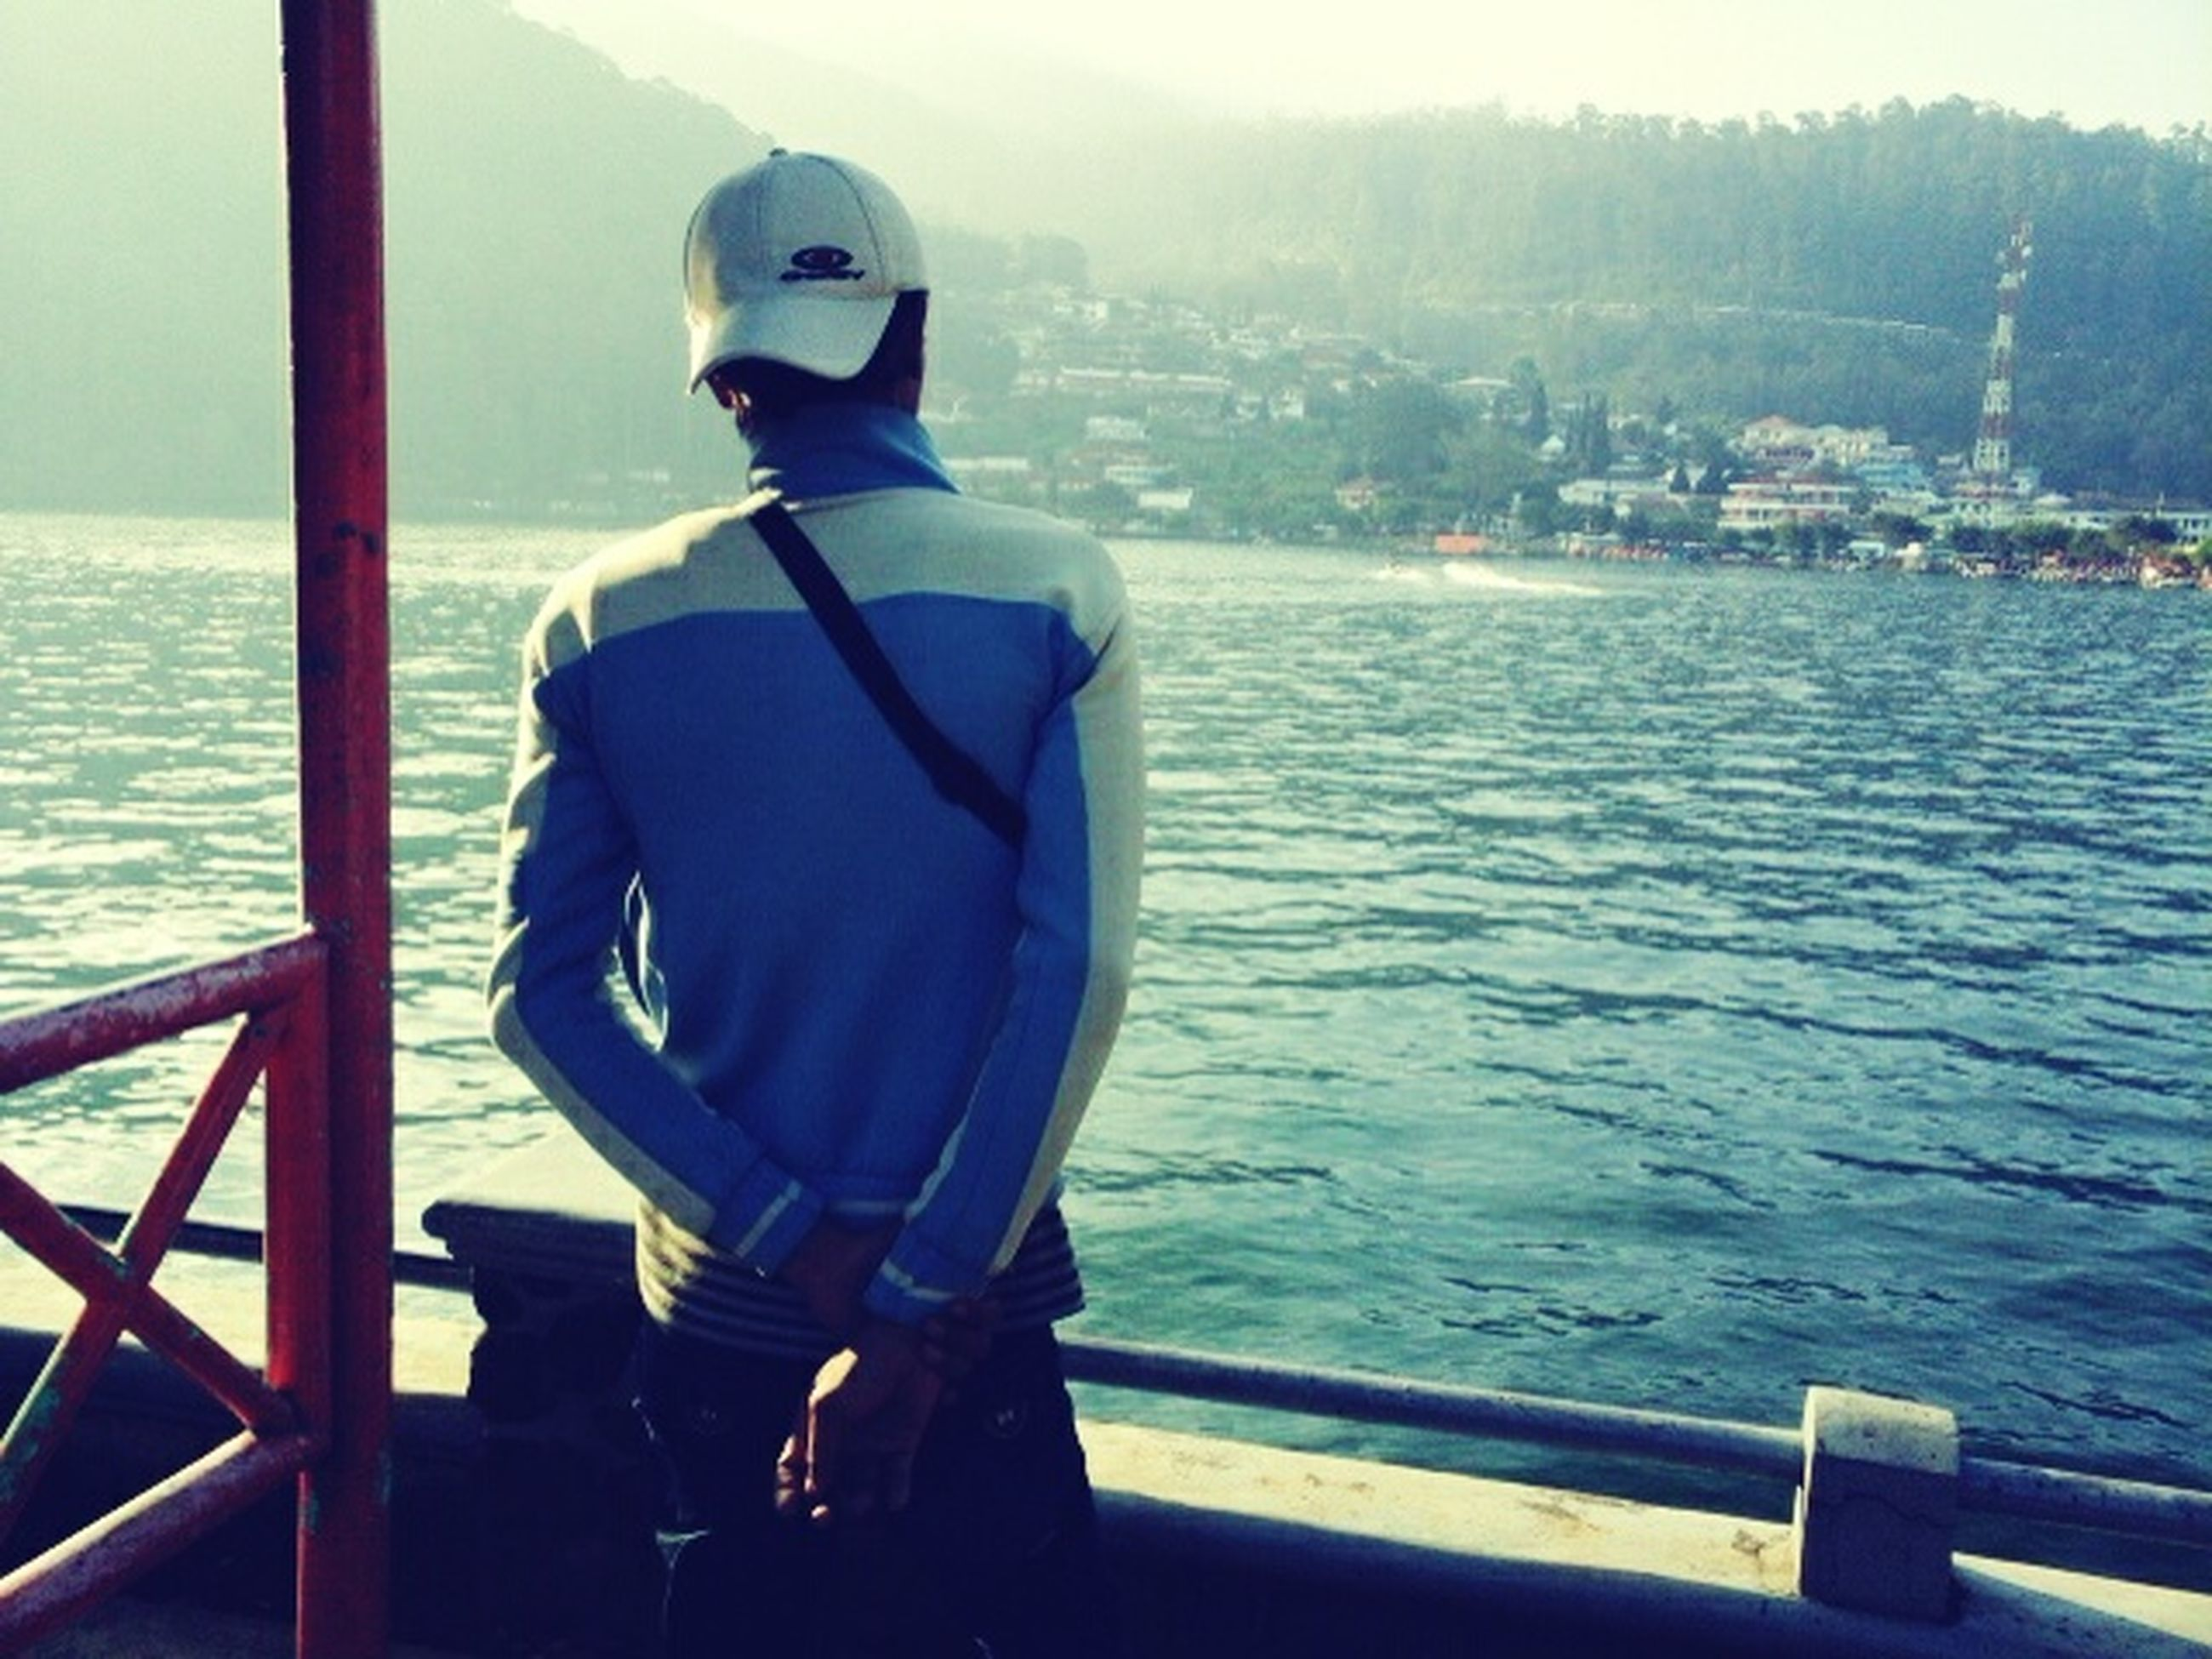 sea, water, railing, rear view, lifestyles, leisure activity, standing, men, nautical vessel, looking at view, day, built structure, casual clothing, pier, sky, three quarter length, sitting, person